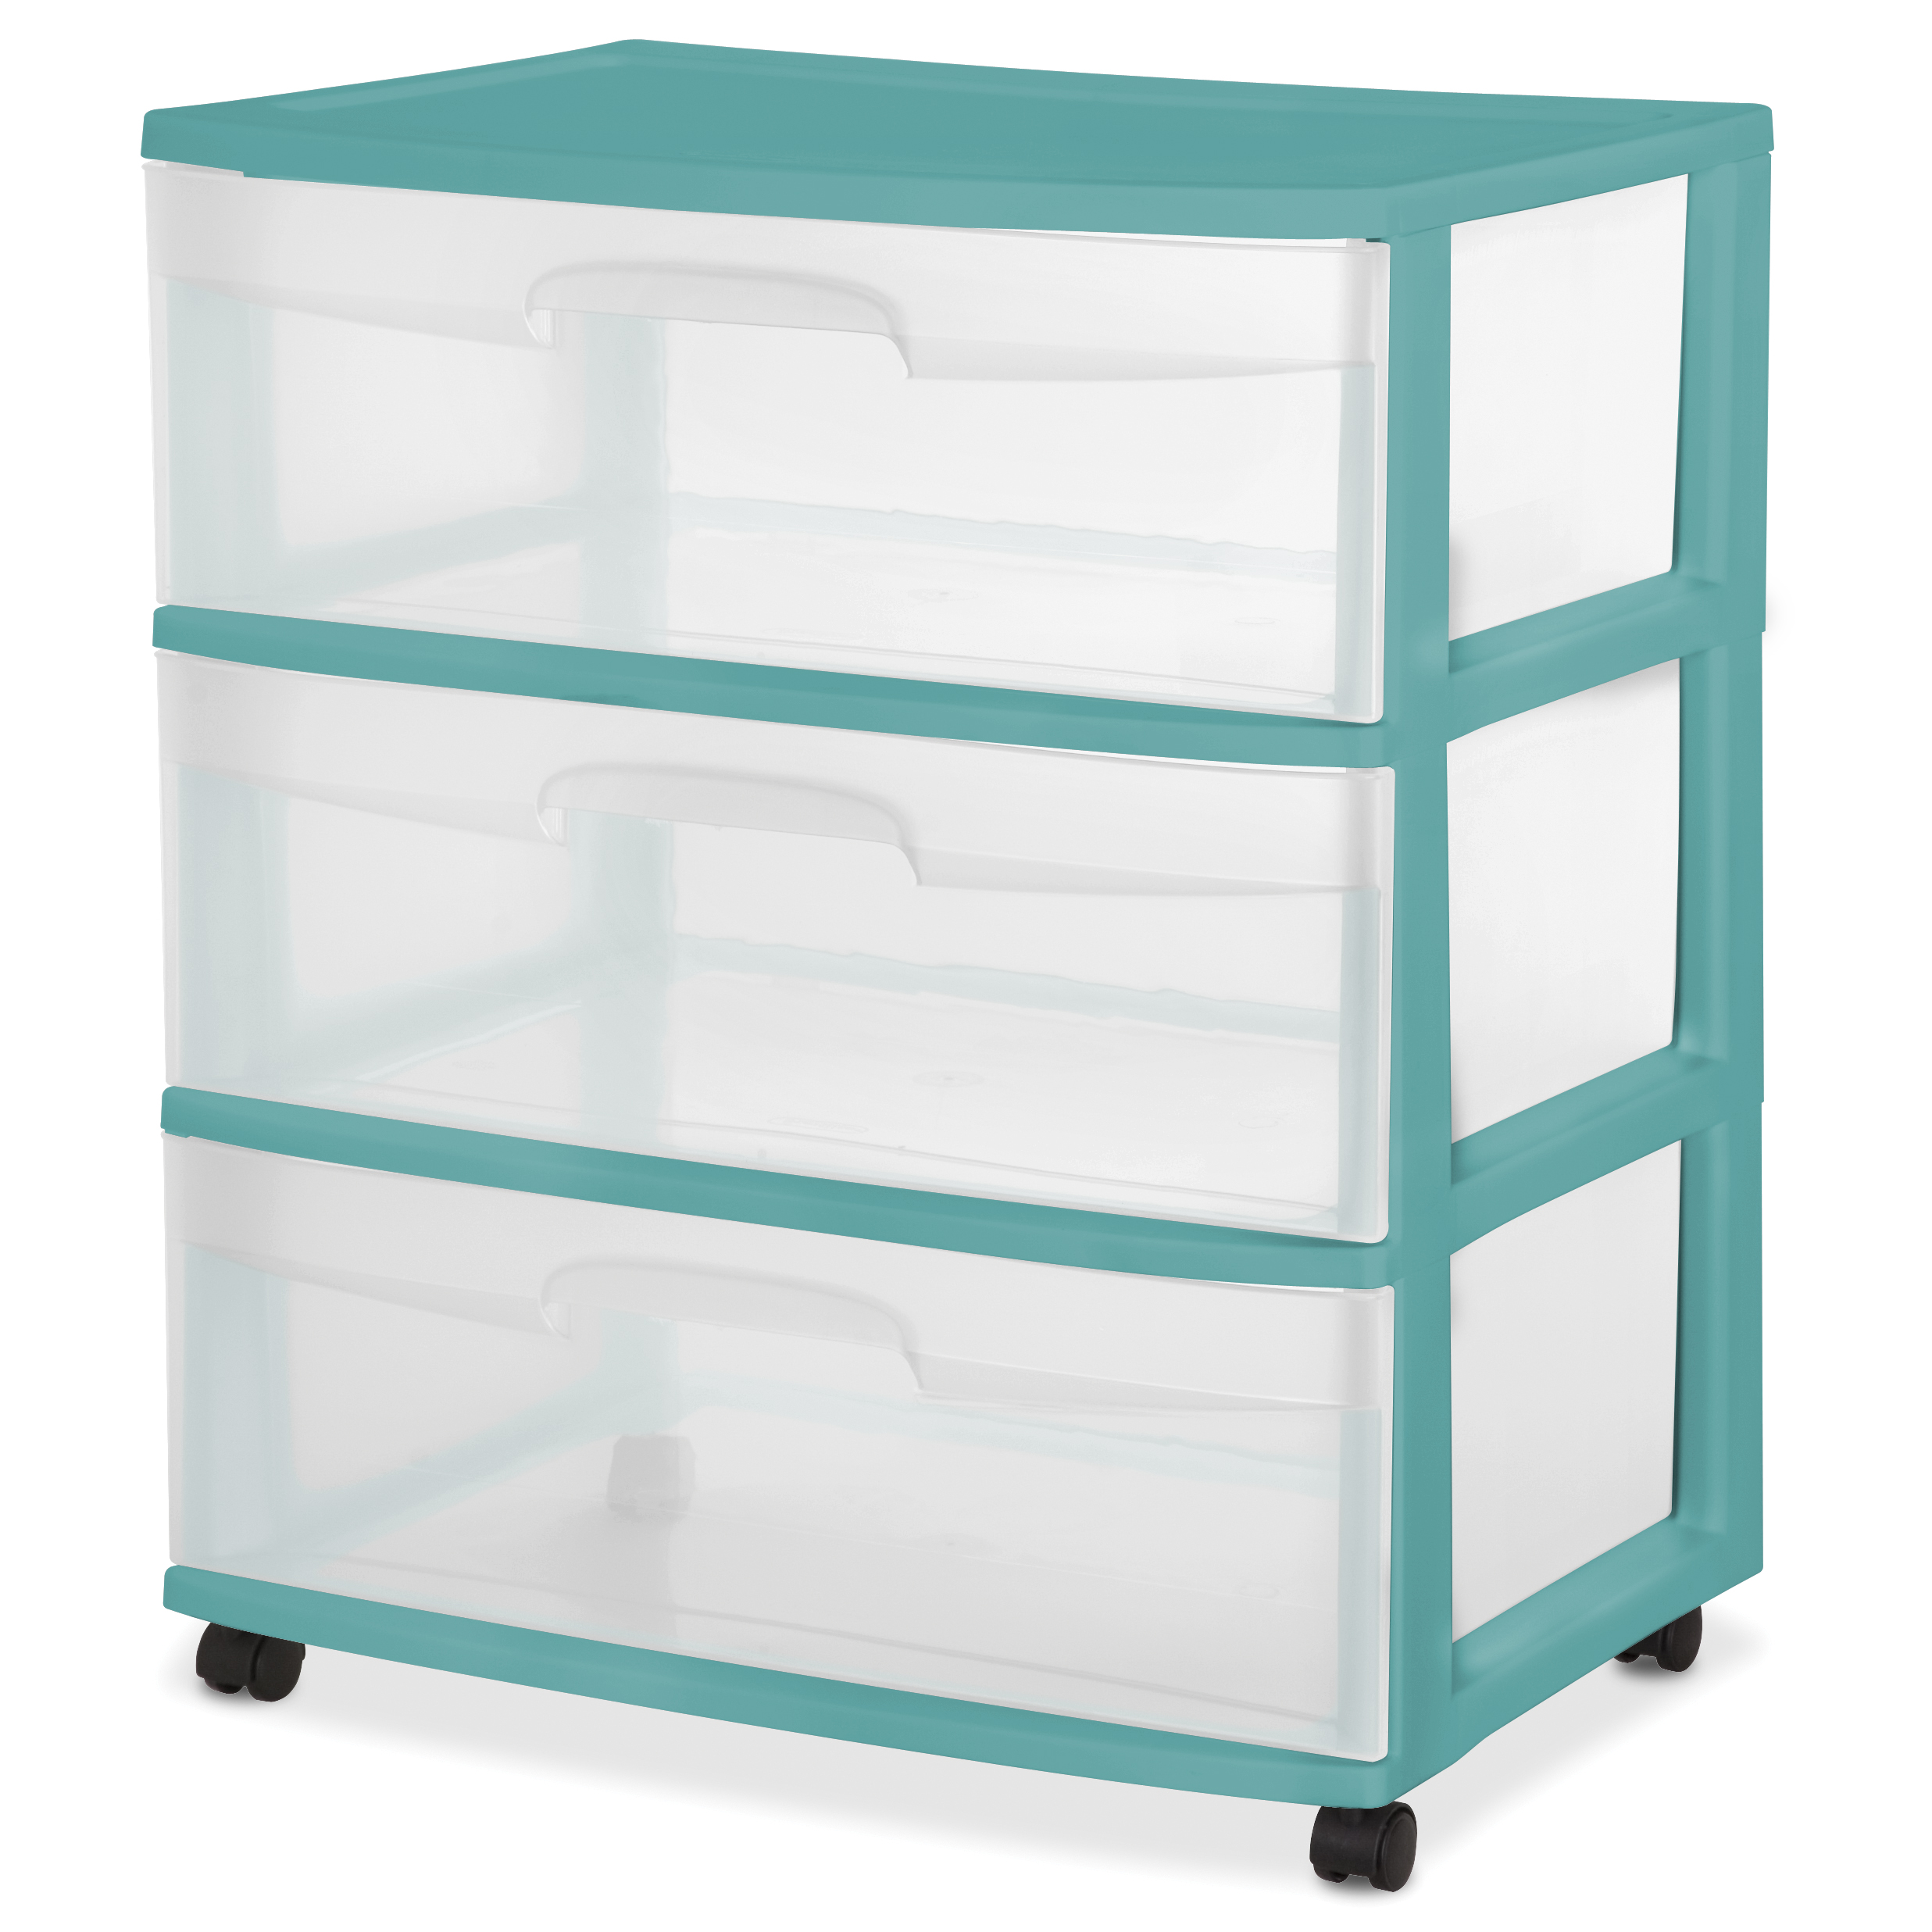 Sterilite 3 Drawer Wide Cart -Peacock Plume, Case of 1